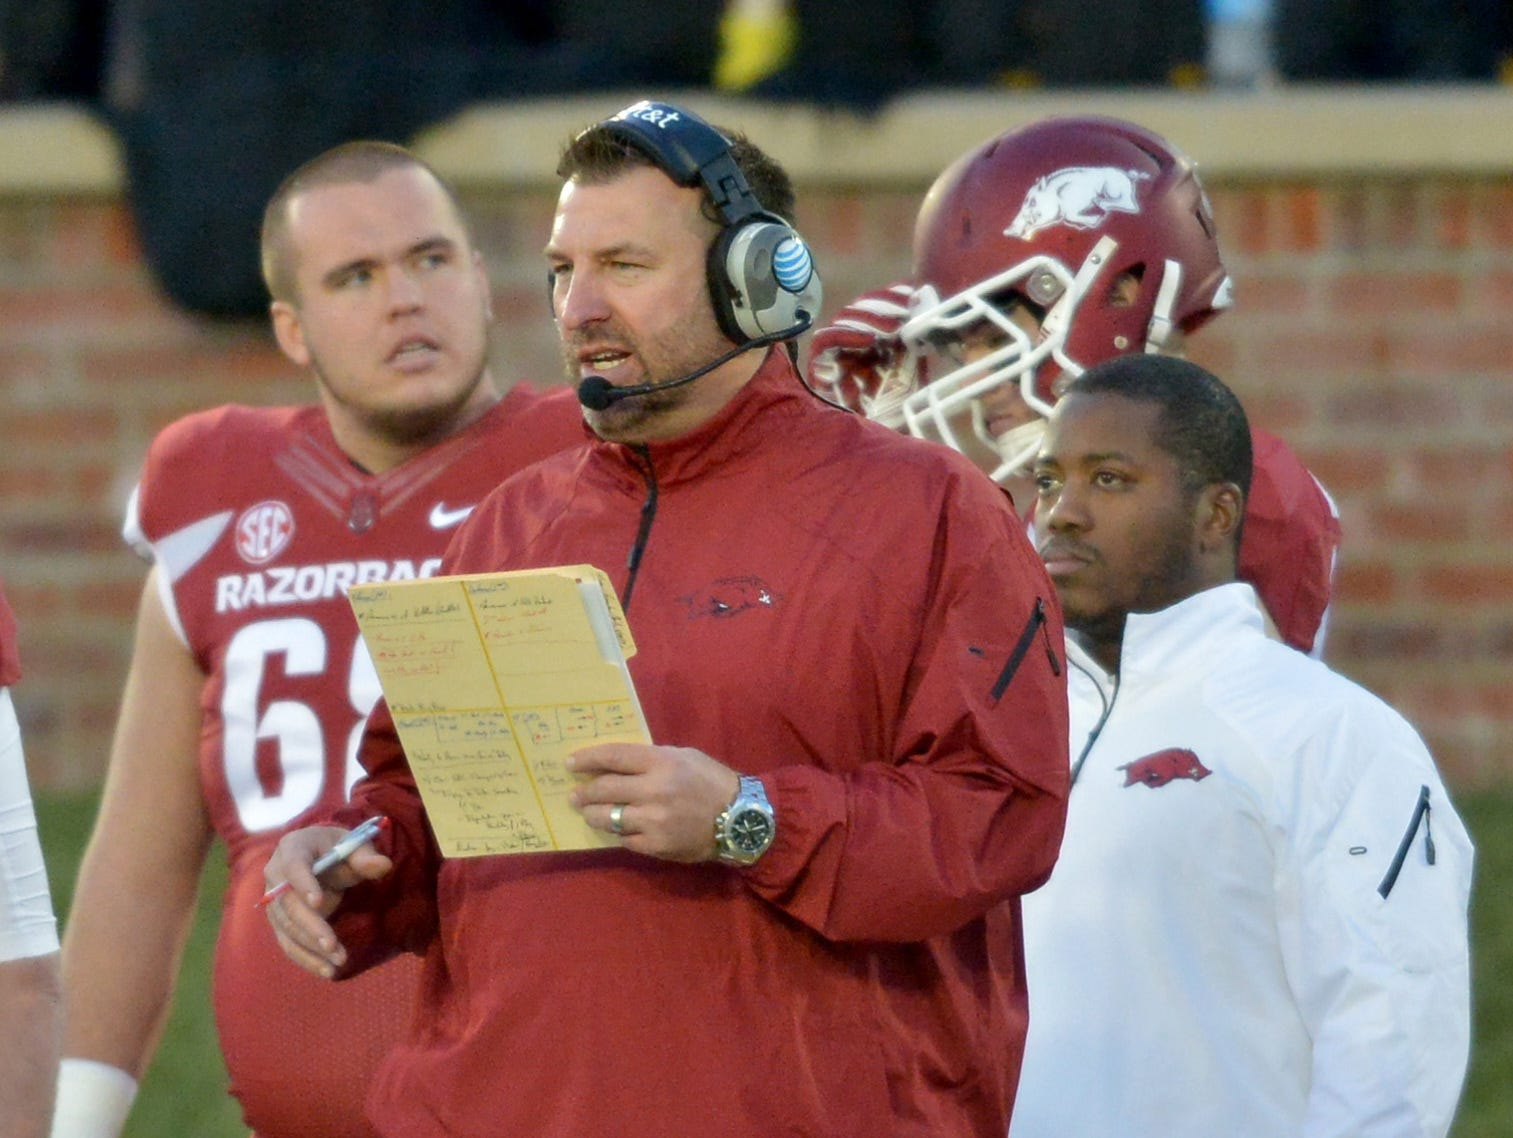 Arkansas Razorbacks head coach Bret Bielema watches play on the sidelines during the second half against the Missouri Tigers at Faurot Field.